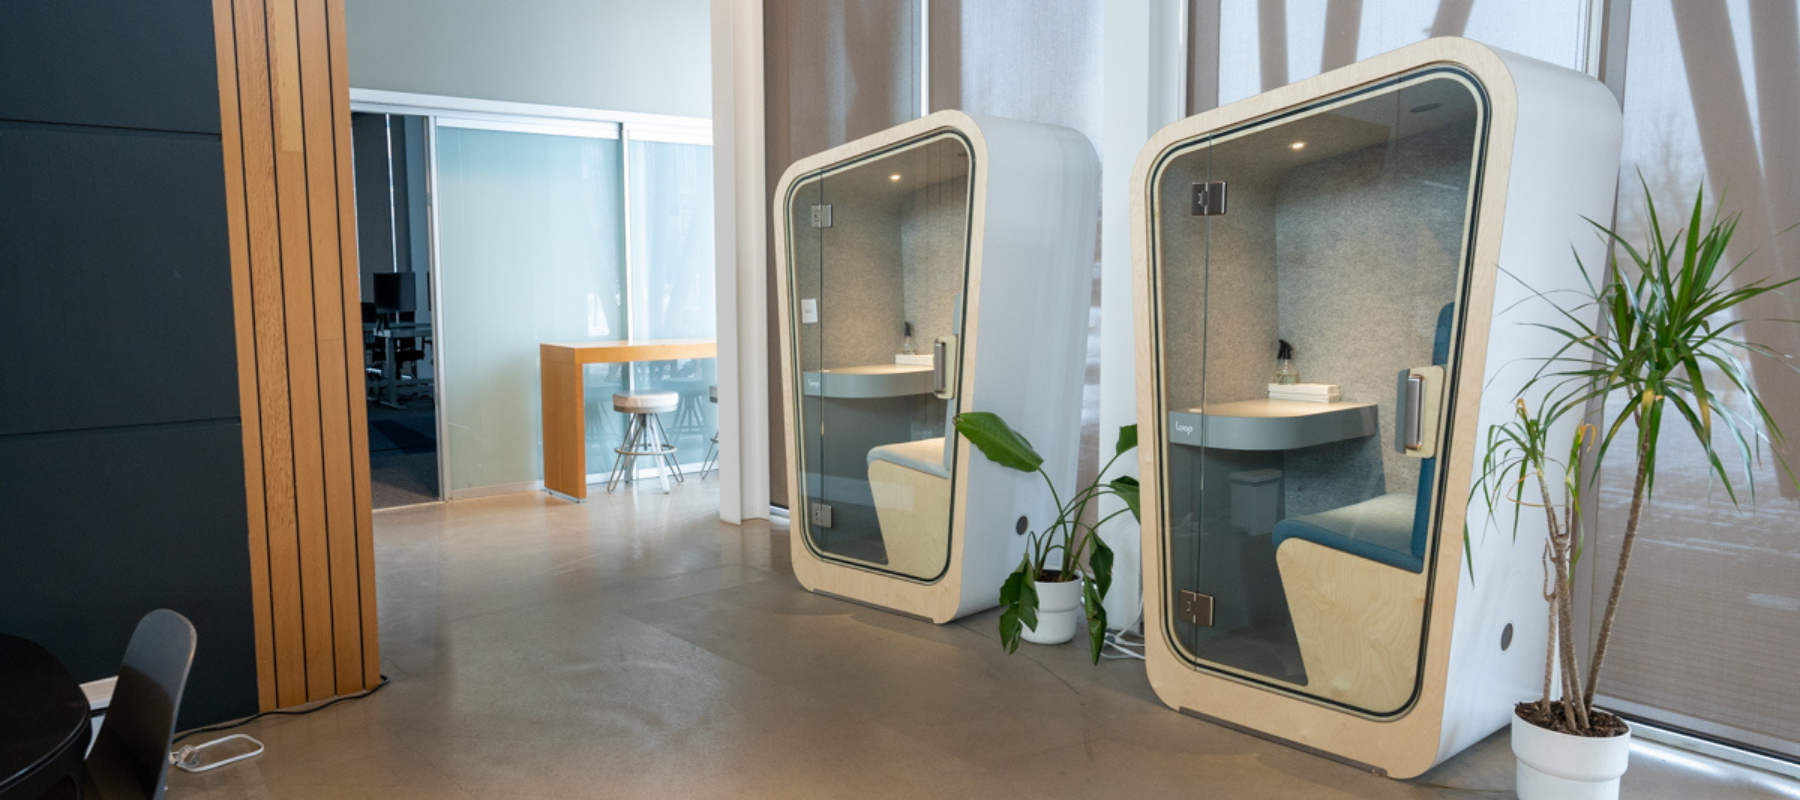 two loop phone booths in an open hybrid office environment